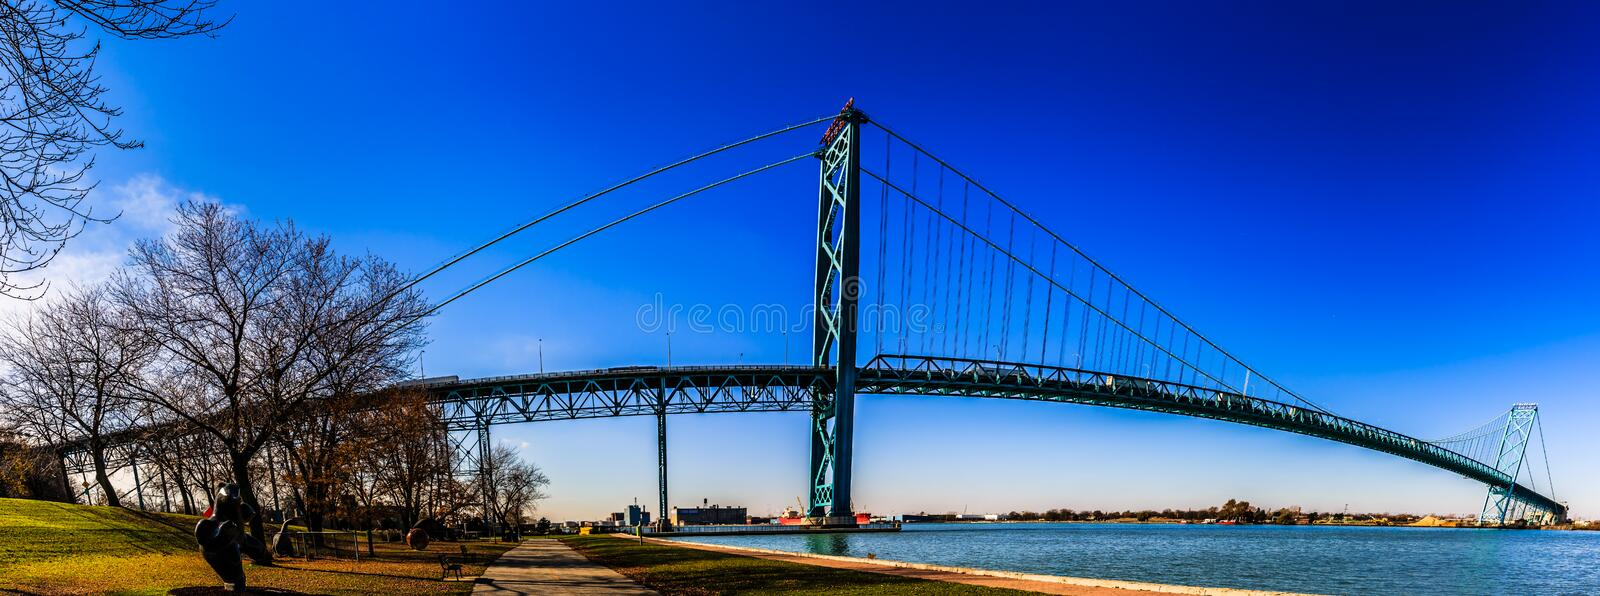 Embaixador Bridge, Windsor, Ontário, Canadá fotos de stock